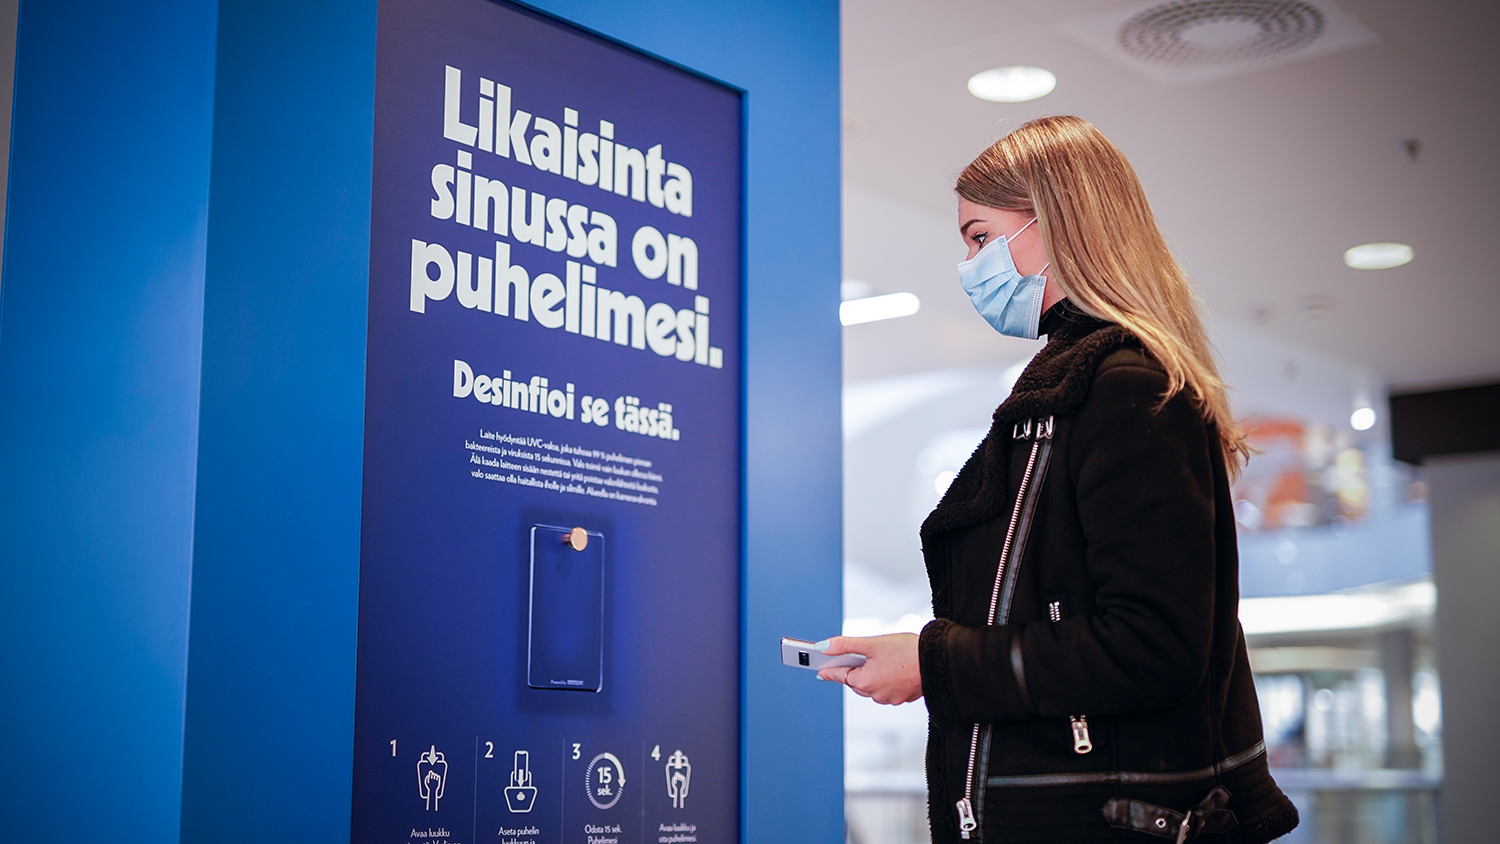 UV light terminal showing where to place one's phone to get sanitized (writing is in Finnish).